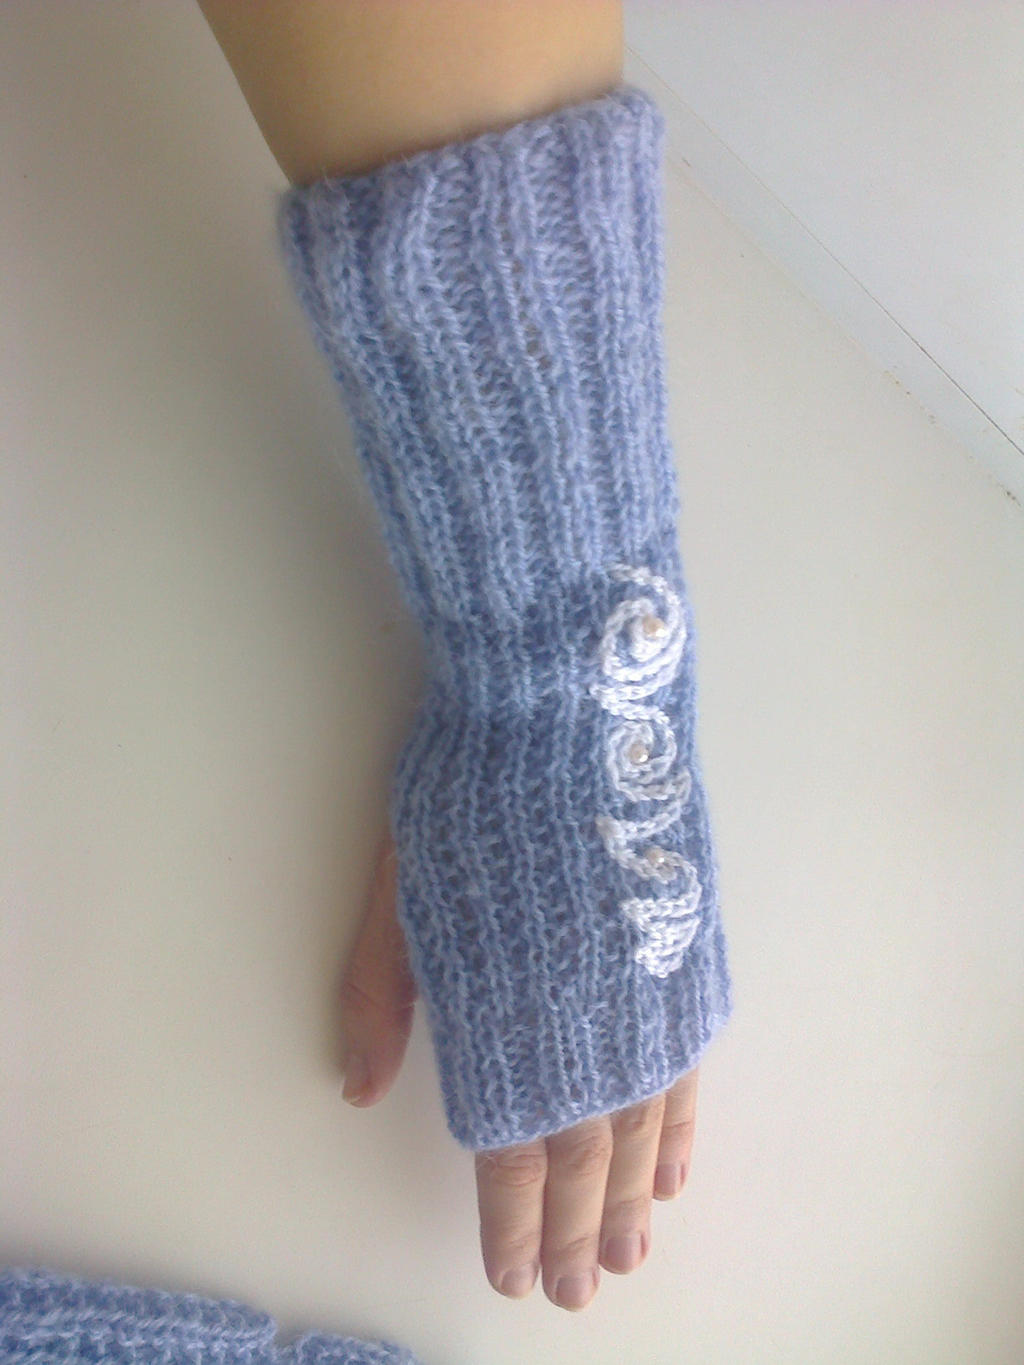 New gloves by Anshell